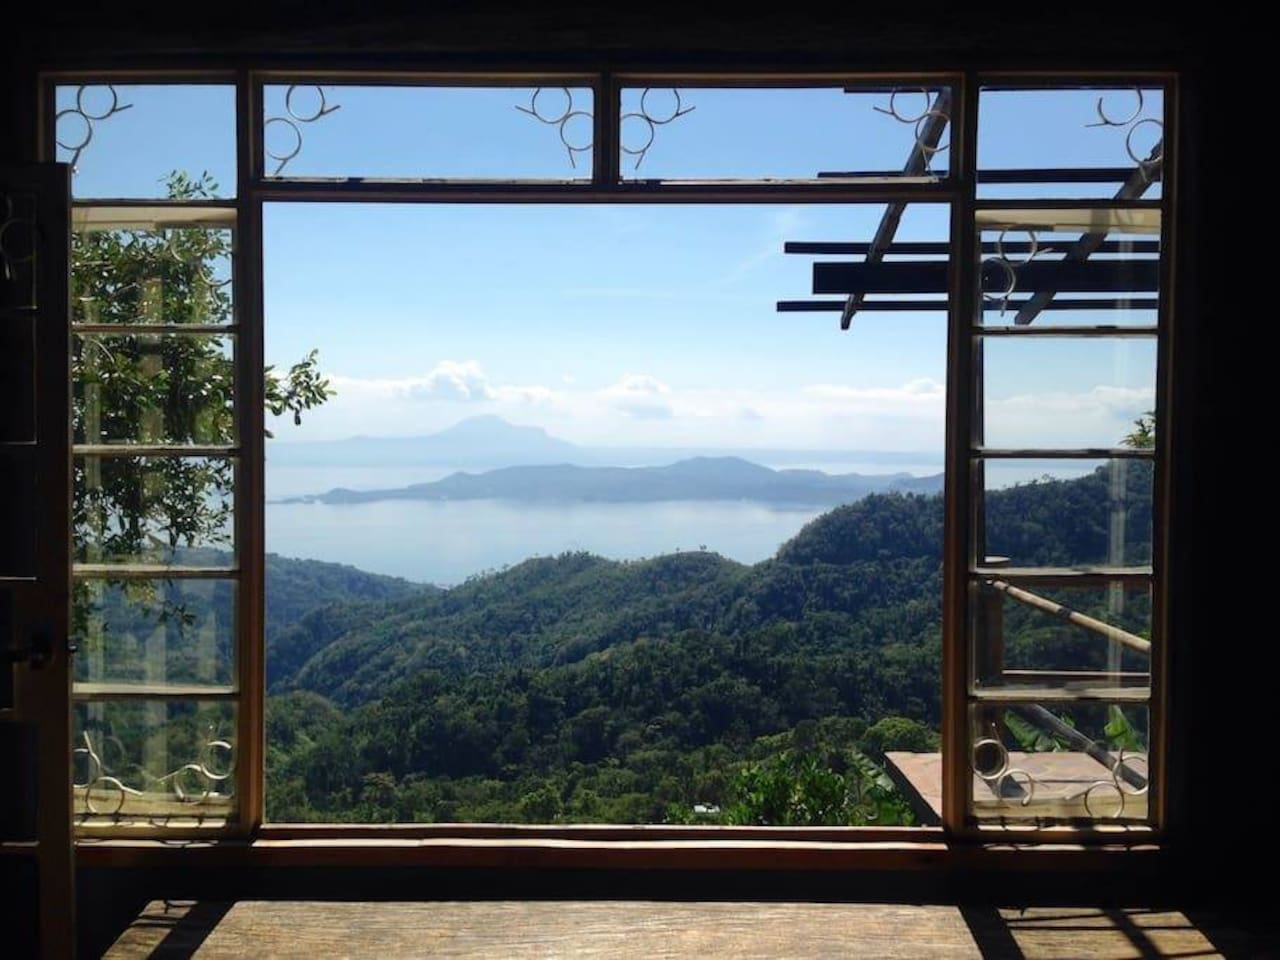 Your breakfast view in Chalet de Tagaytay